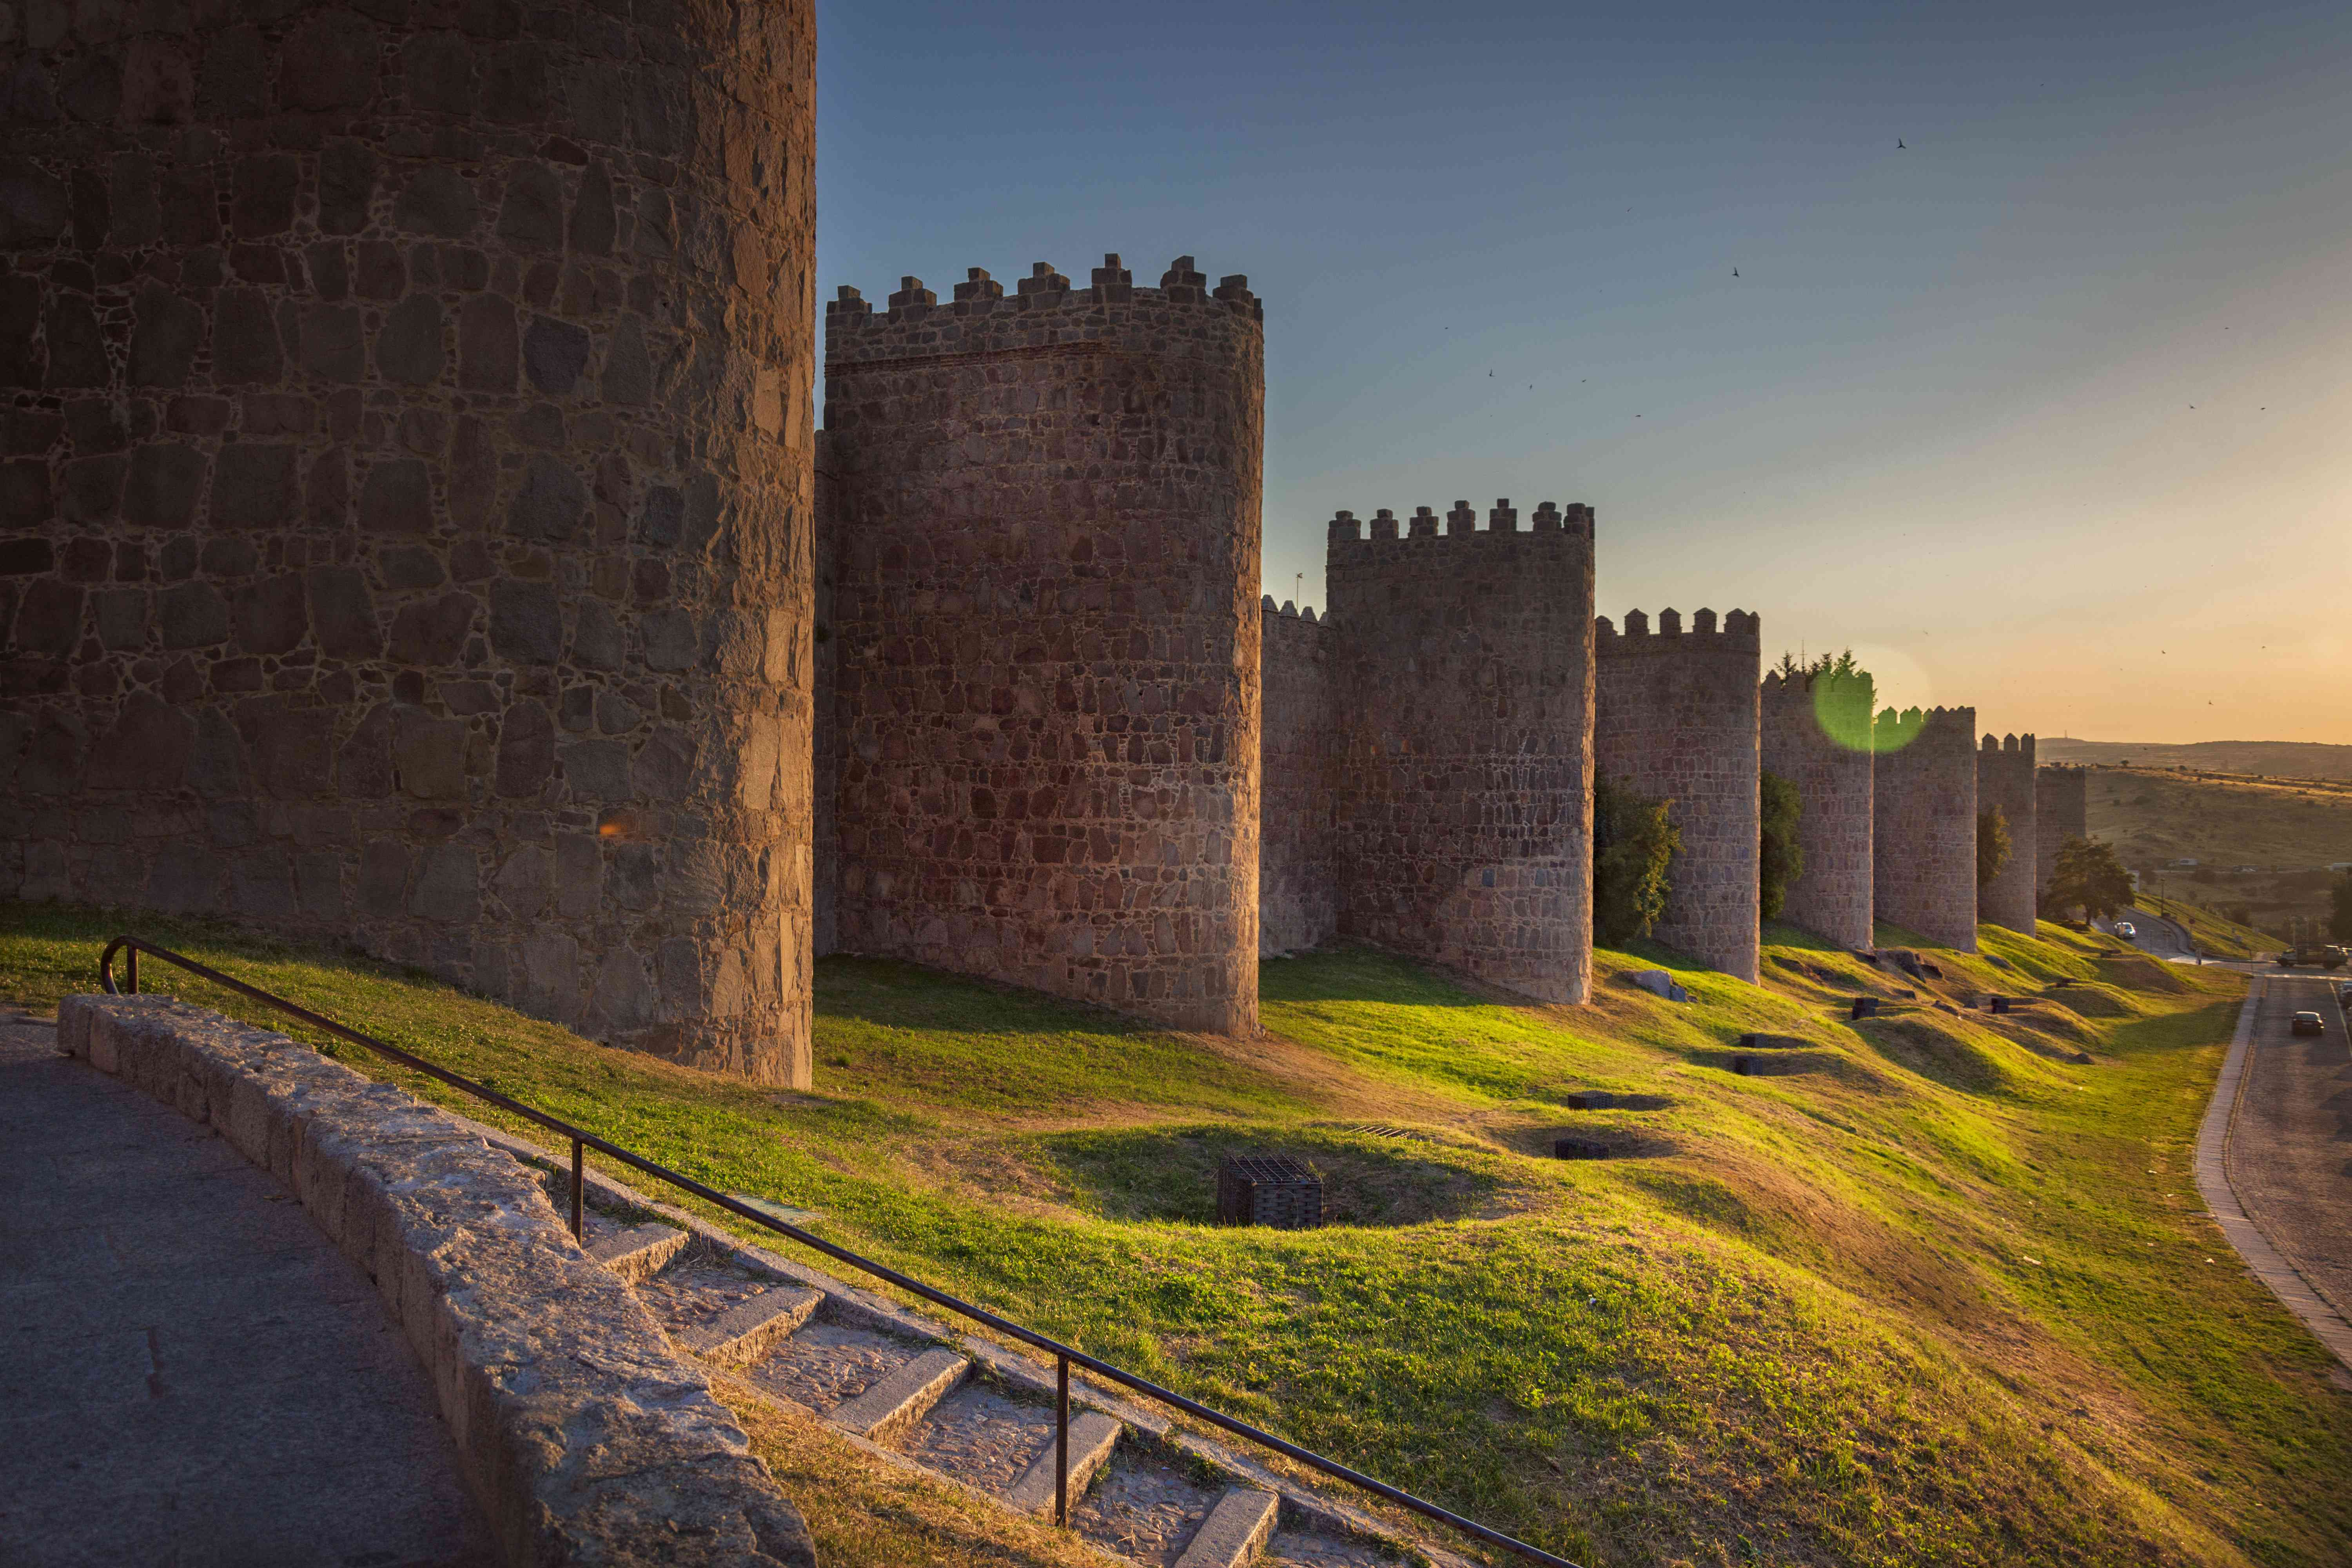 Walls of Avila at sunset. Fortified building. Fence surrounding the city